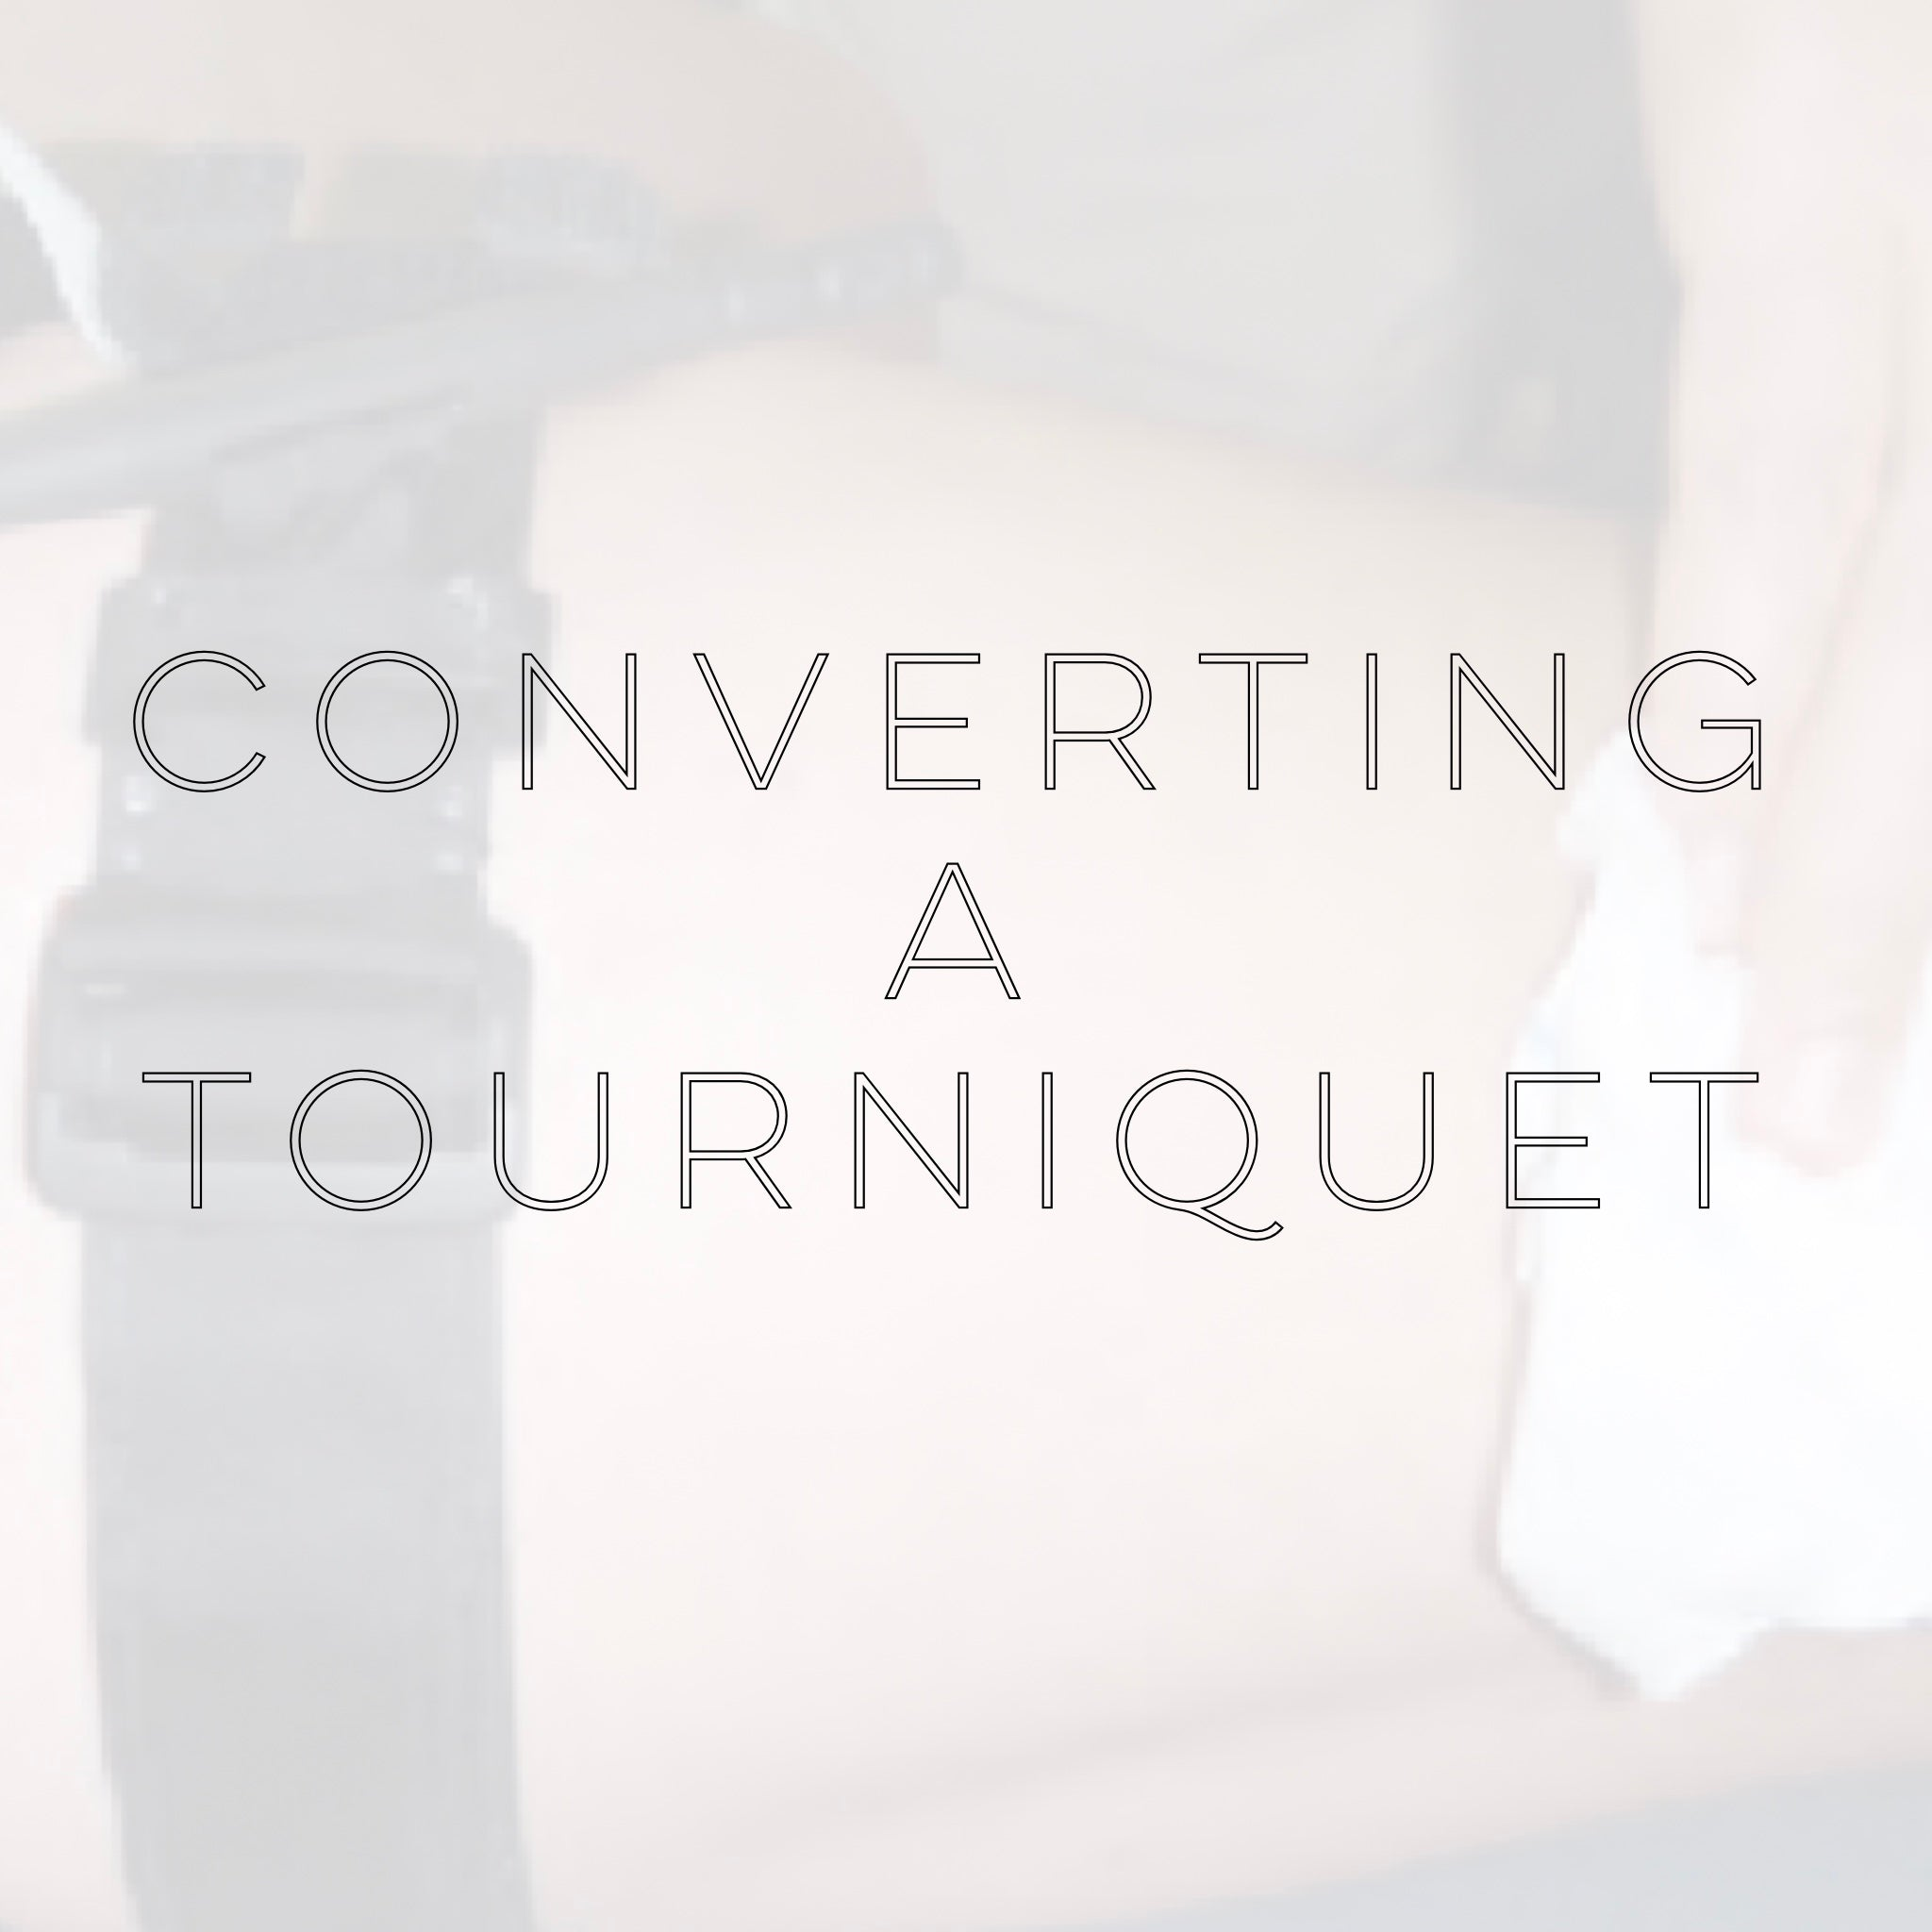 When to Convert A Tourniquet